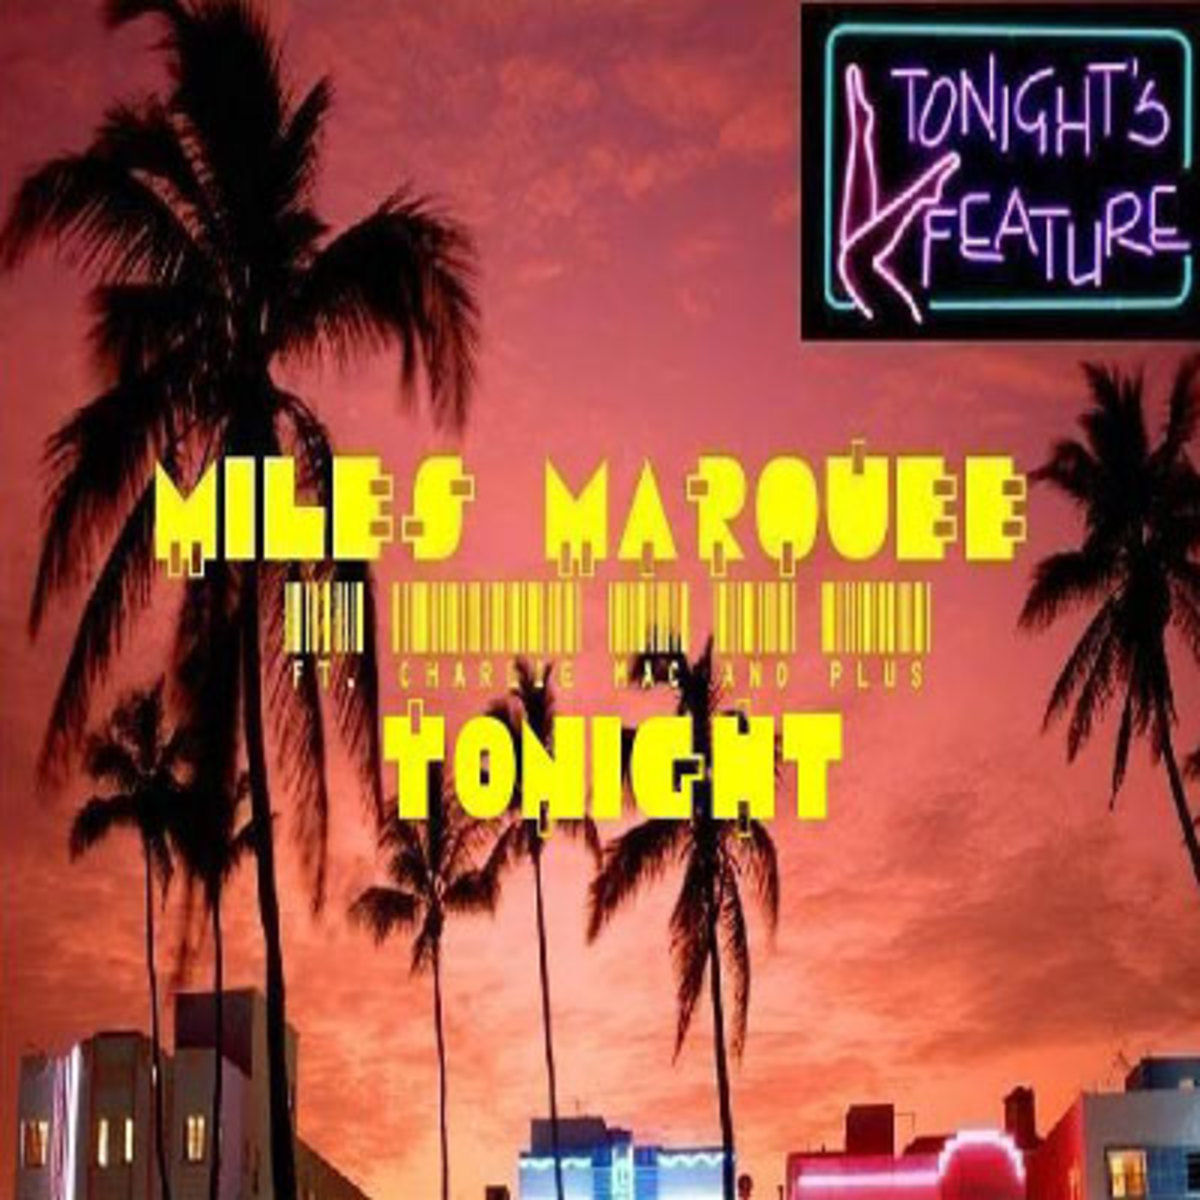 milesmarquee-tonight.jpg